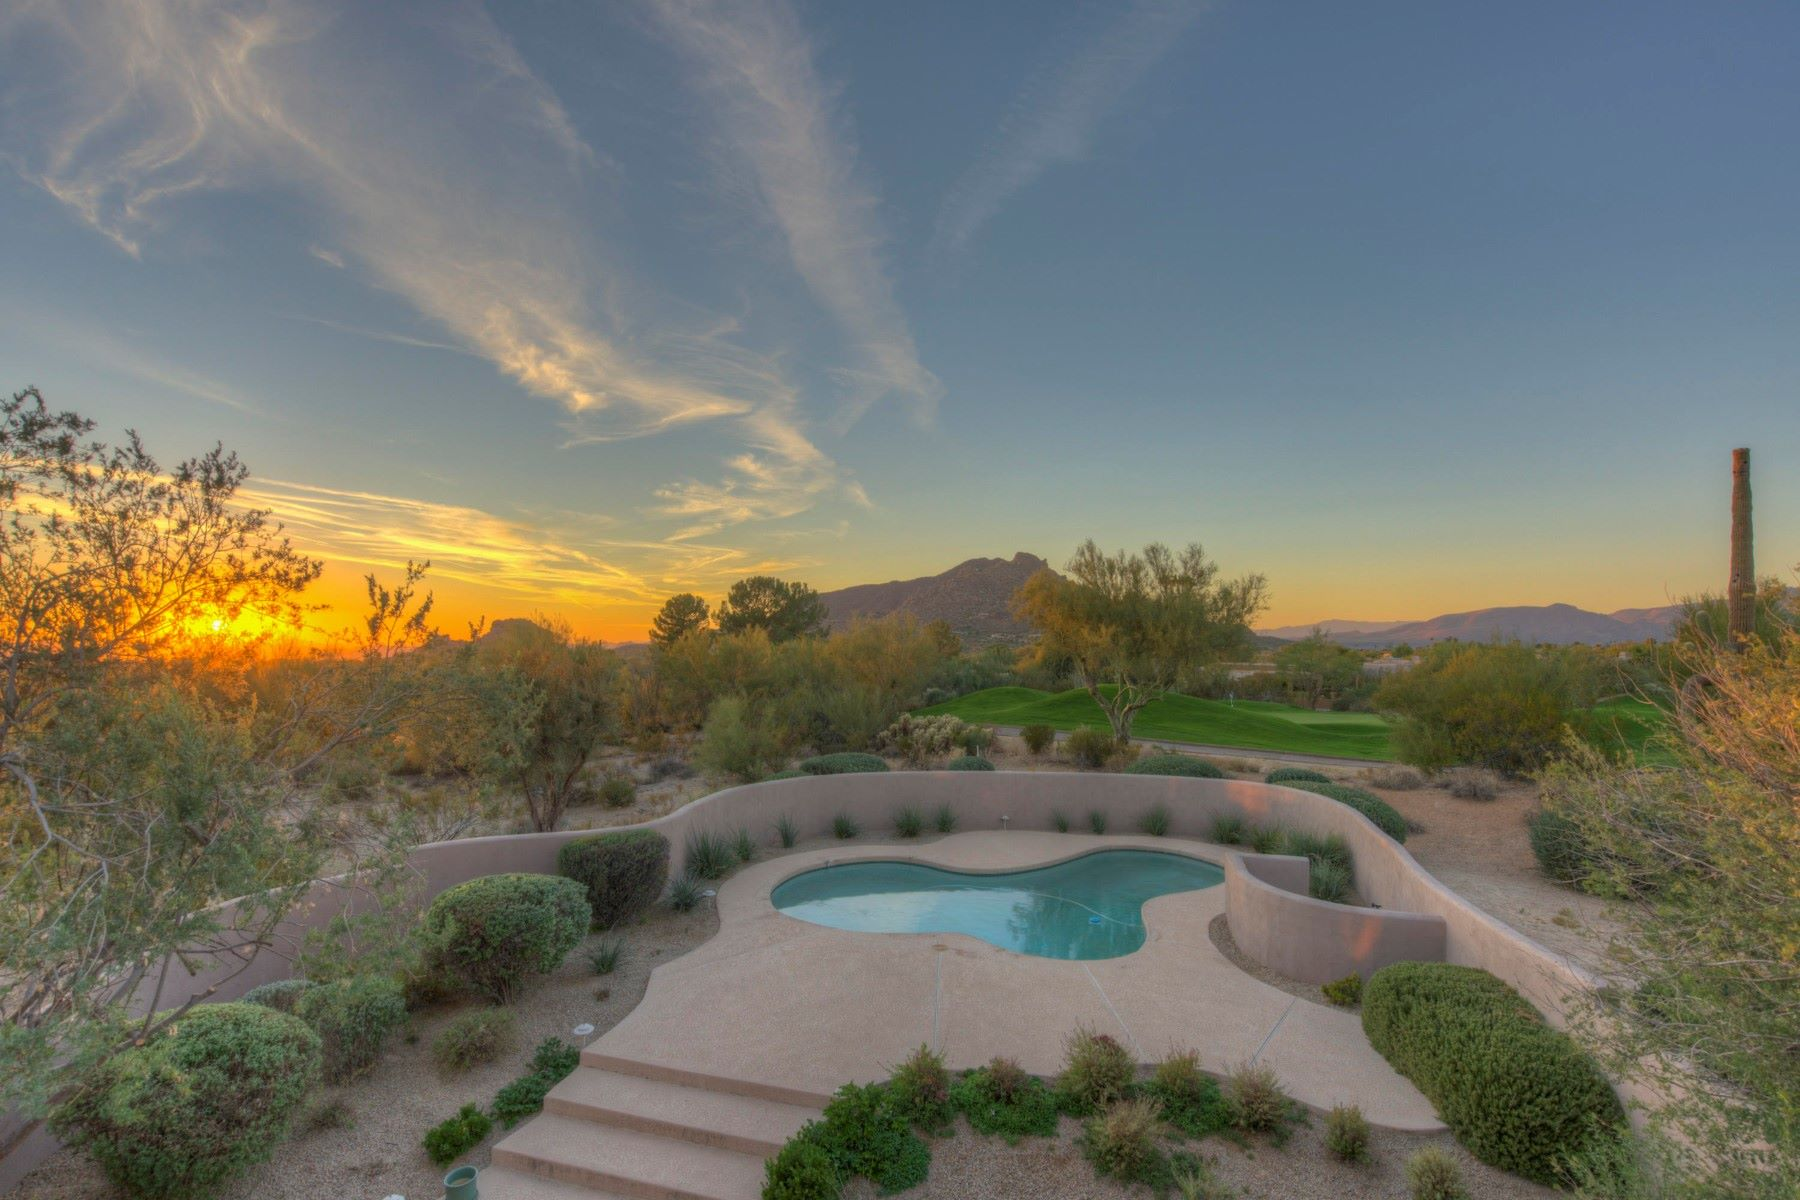 Single Family Home for Sale at Incredible Home in The Boulders 34940 N Indian Camp Trl, Scottsdale, Arizona, 85266 United States